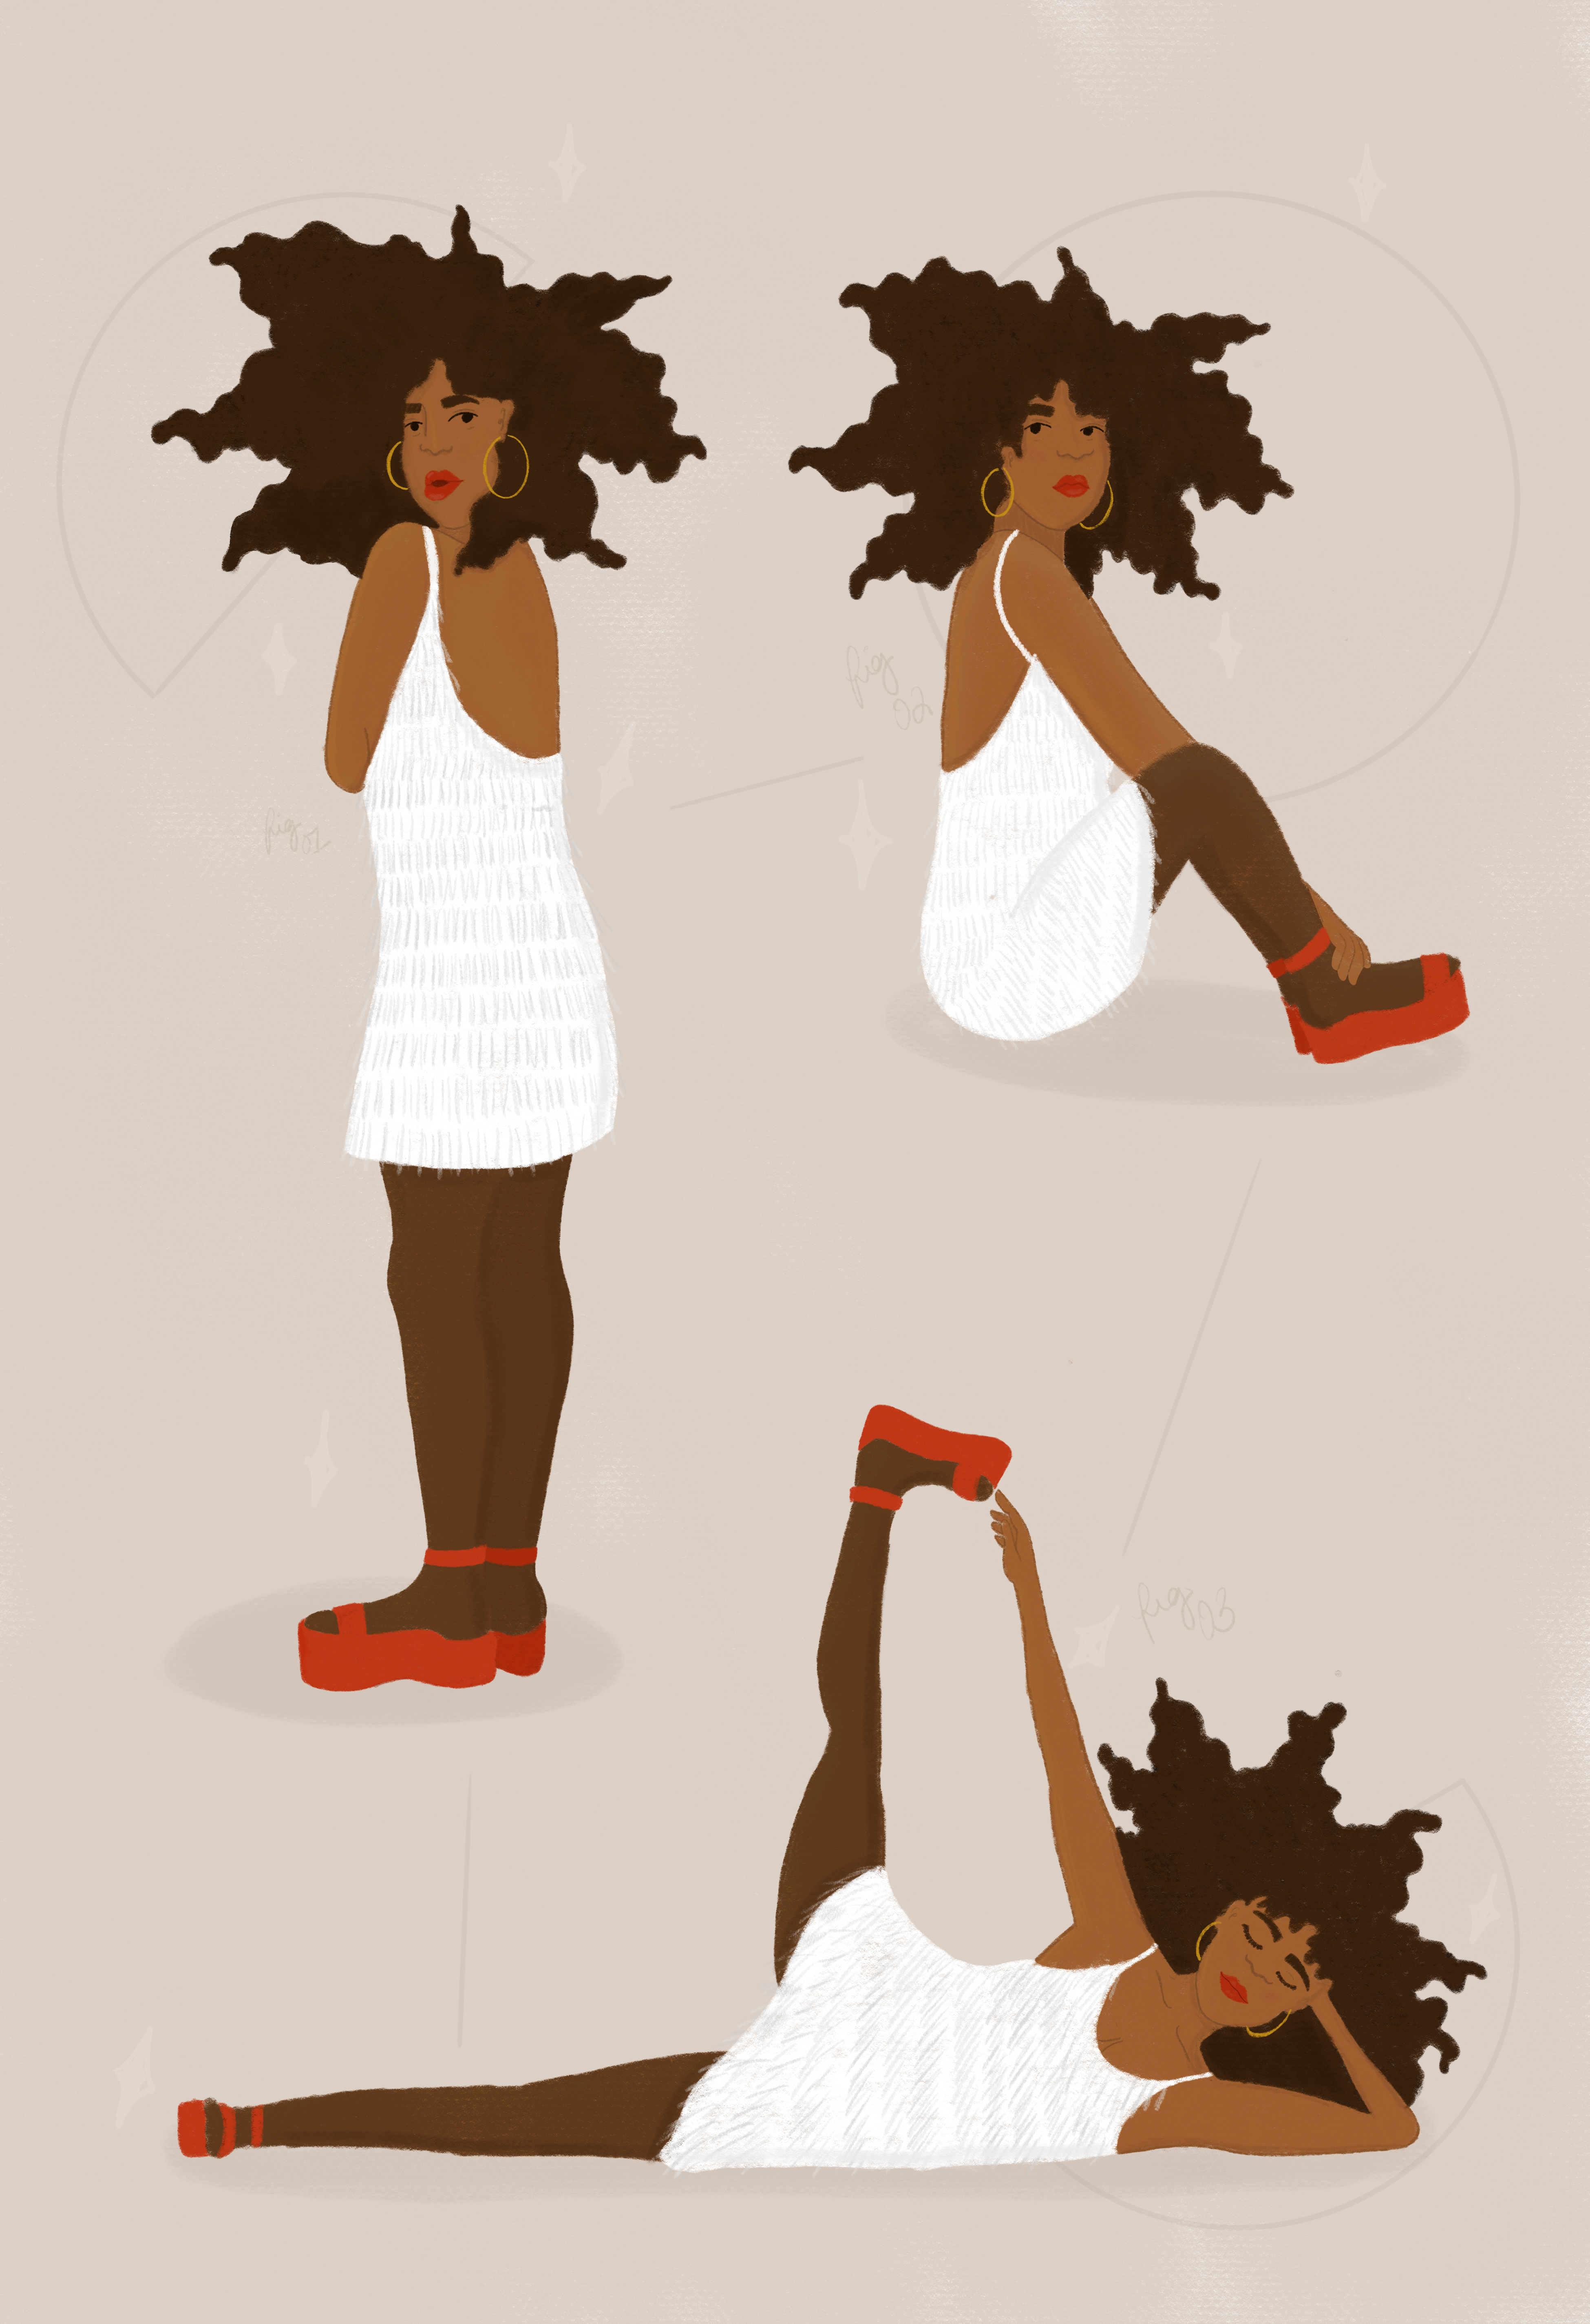 One character in a white dress and big, kinky hair in three poses on a beige background.